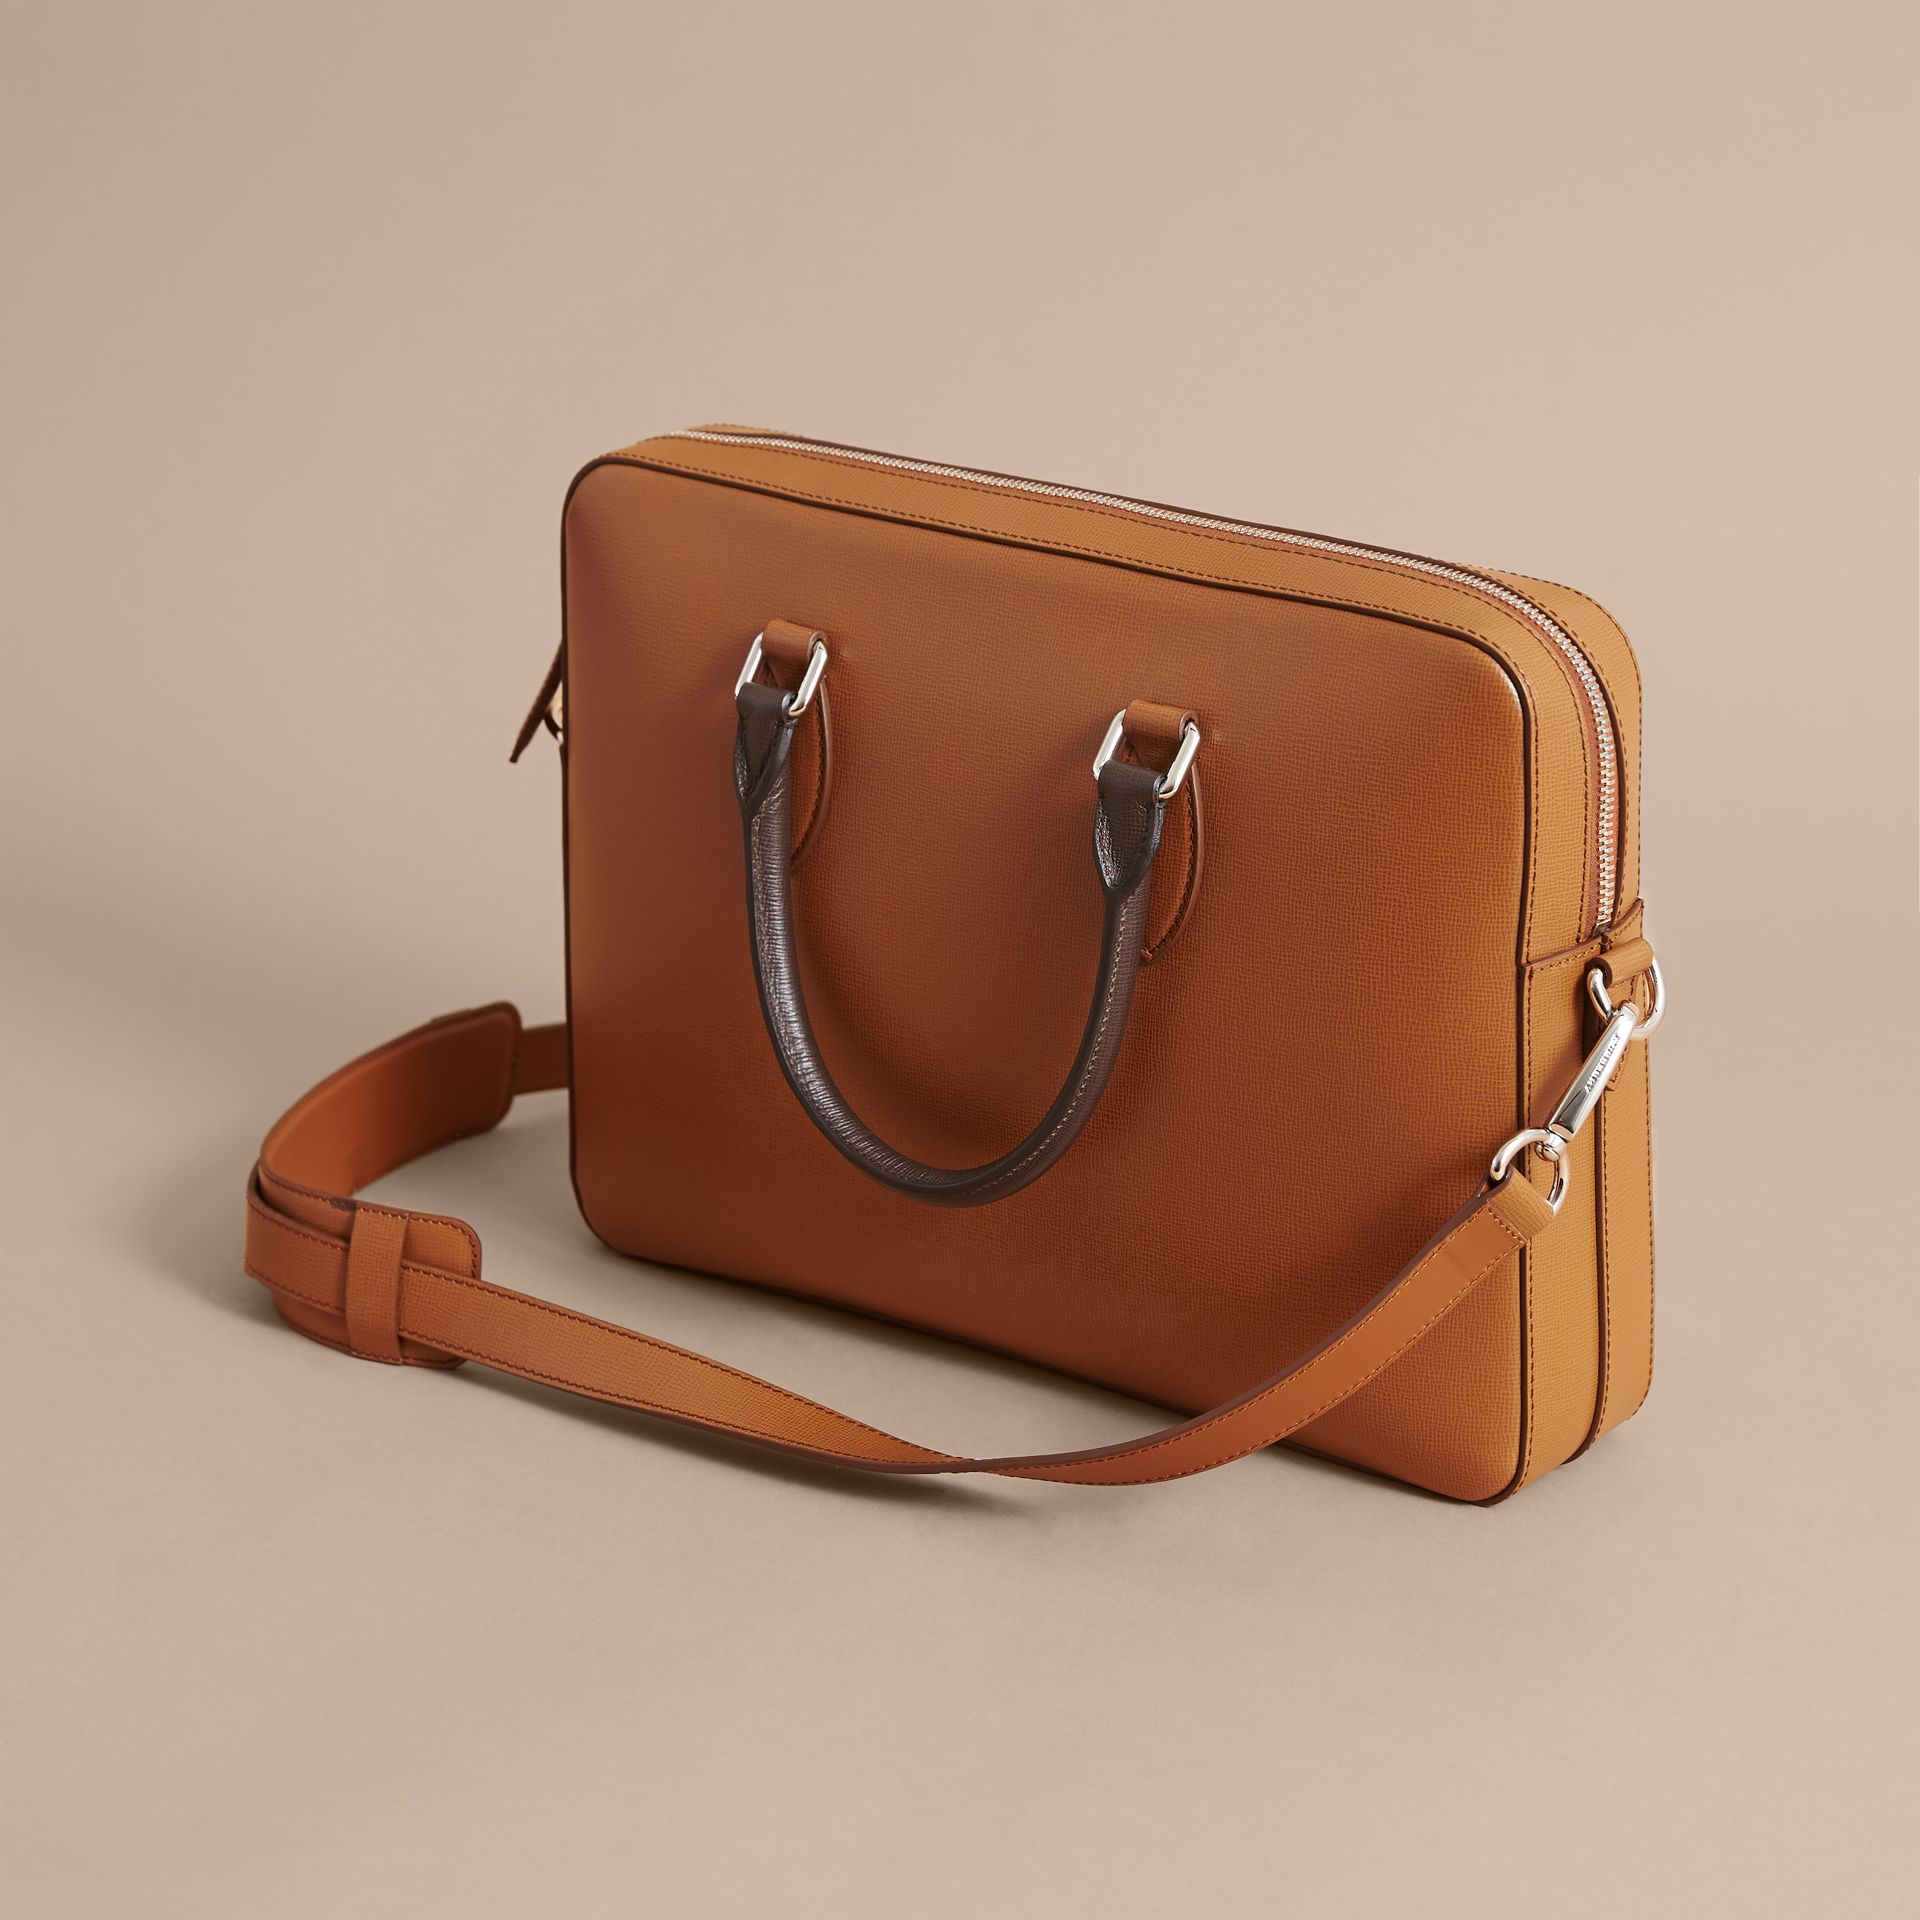 London Leather Briefcase in Tan/chocolate - Men | Burberry United Kingdom - gallery image 5